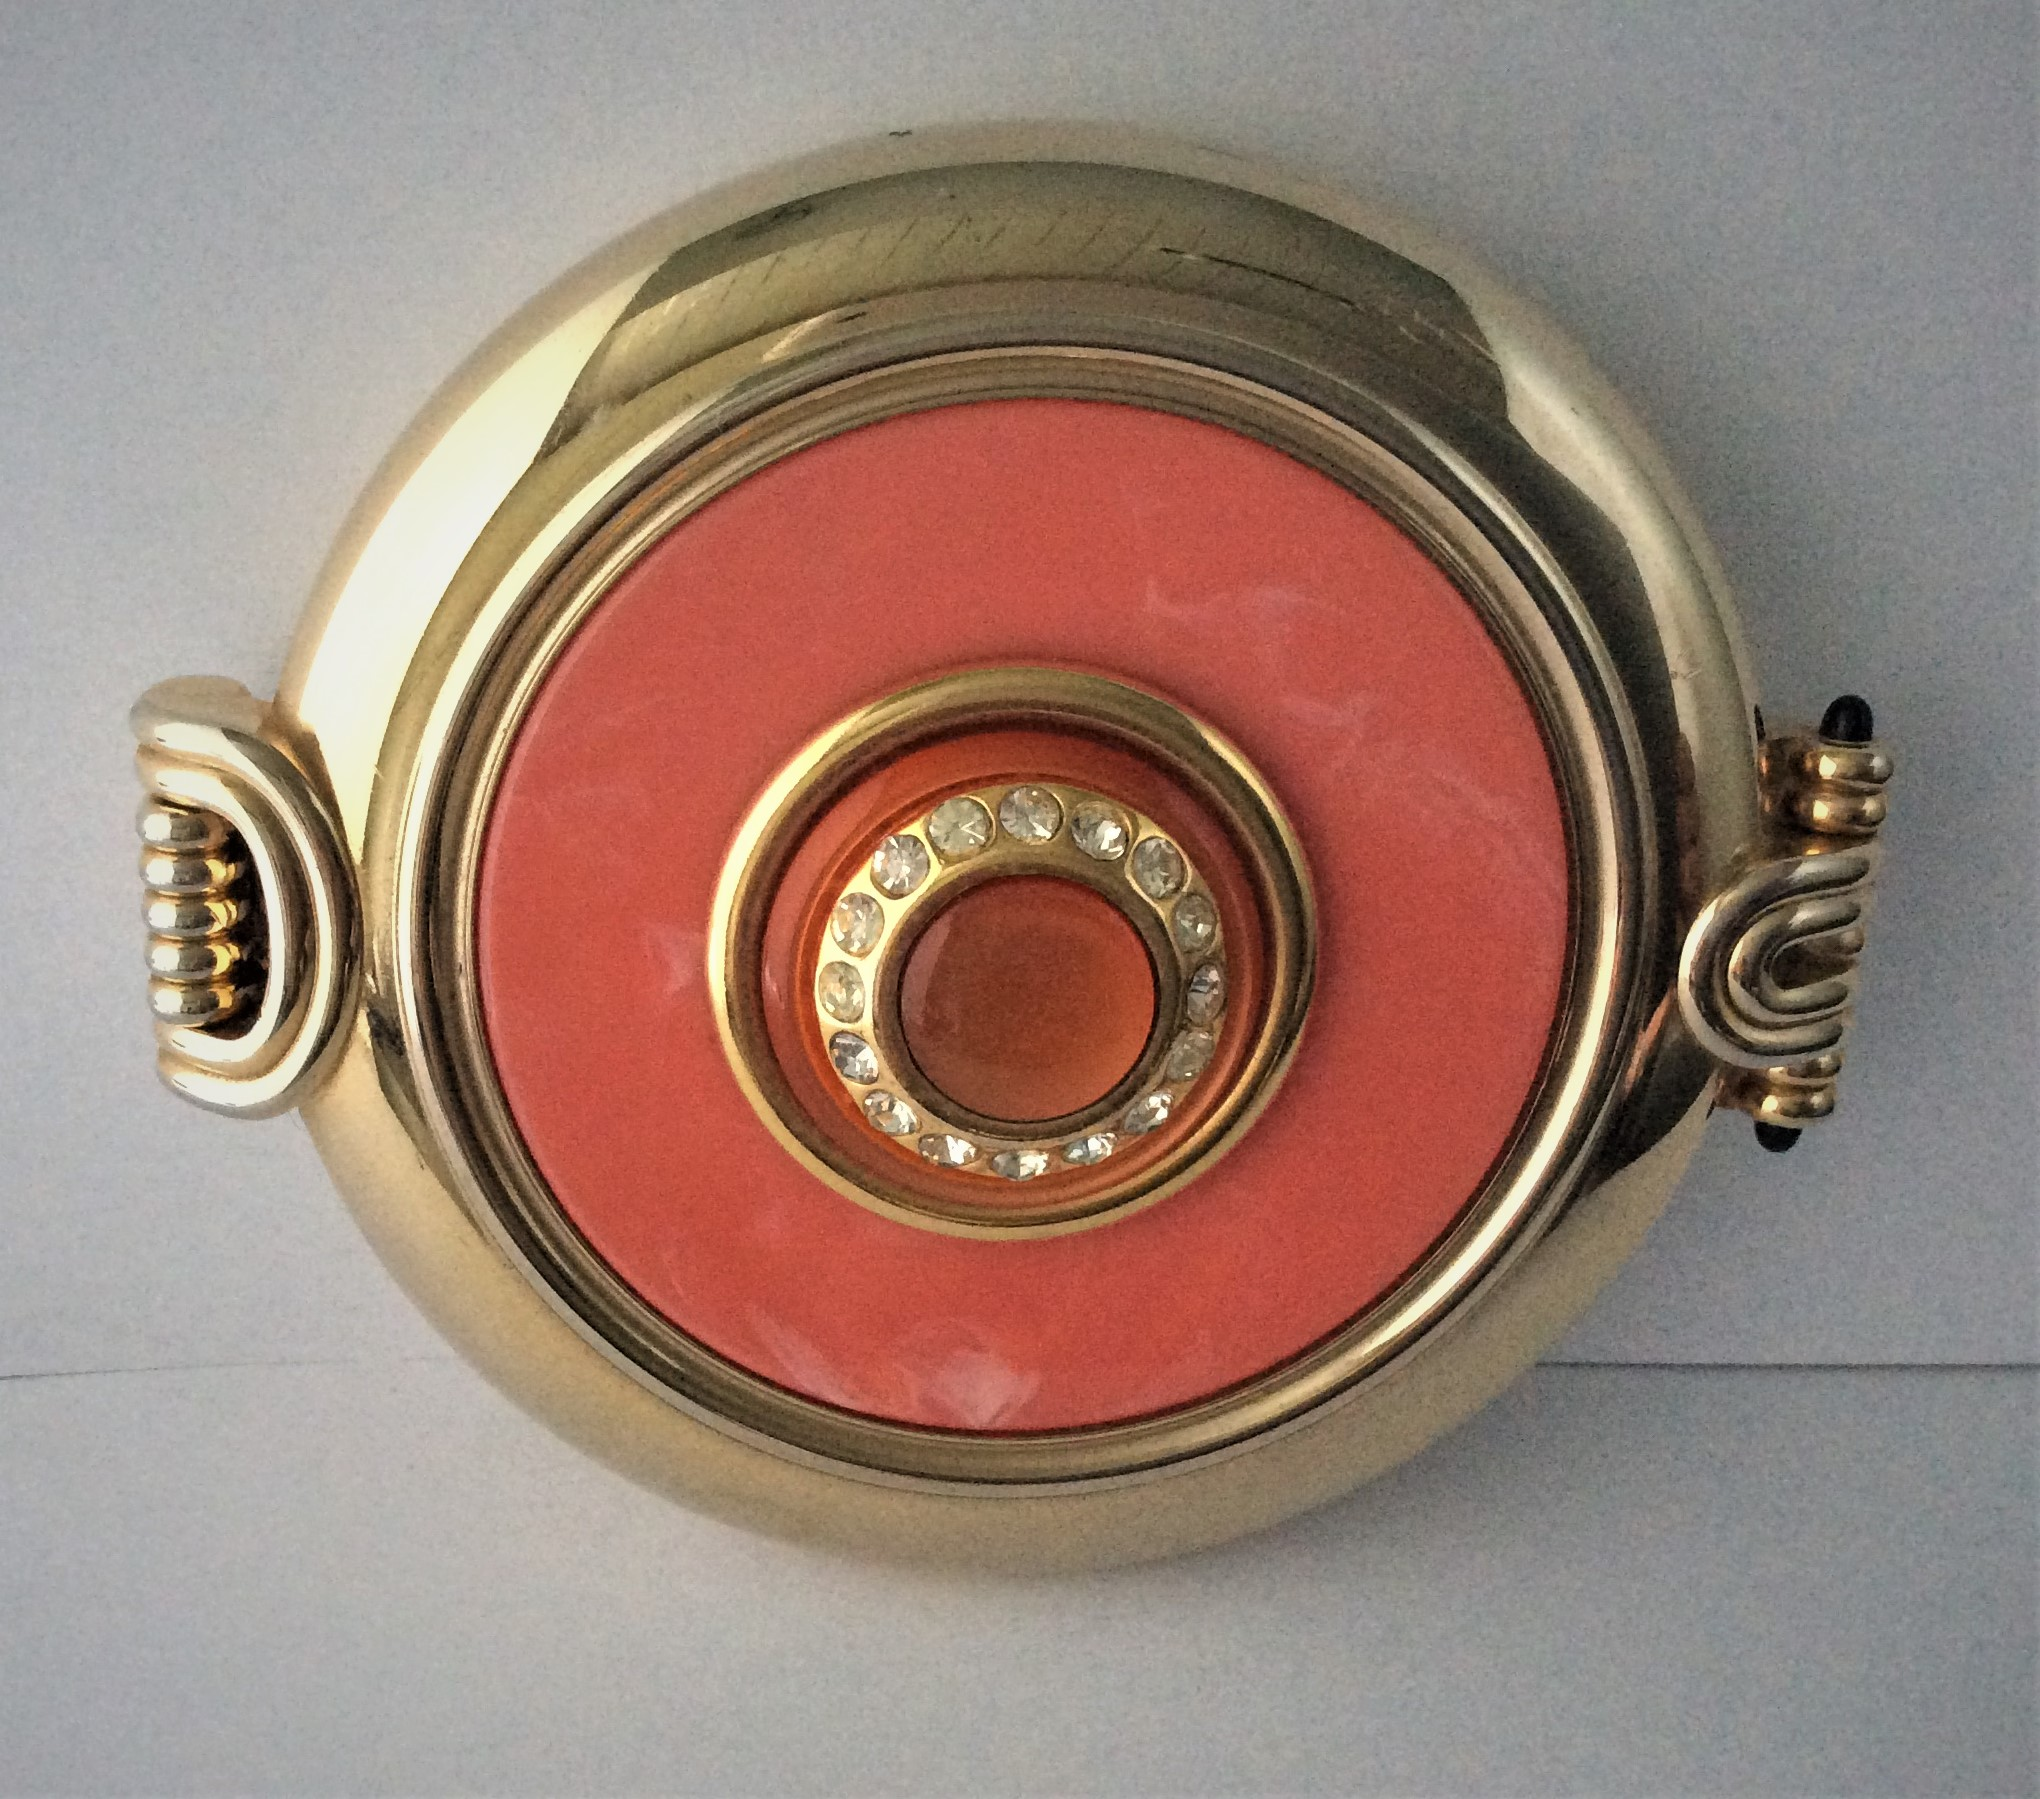 Vintage c.70s Jäneke Gold Plated Double Mirror Compact